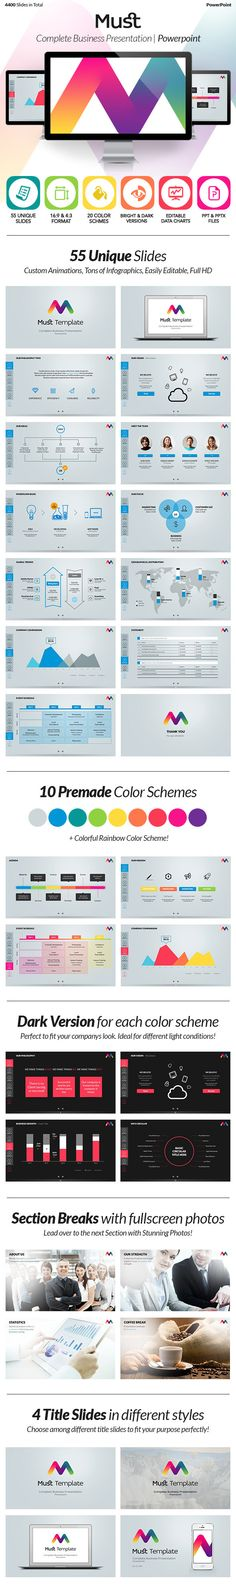 Must PowerPoint & Keynote Presentation Template on Behance